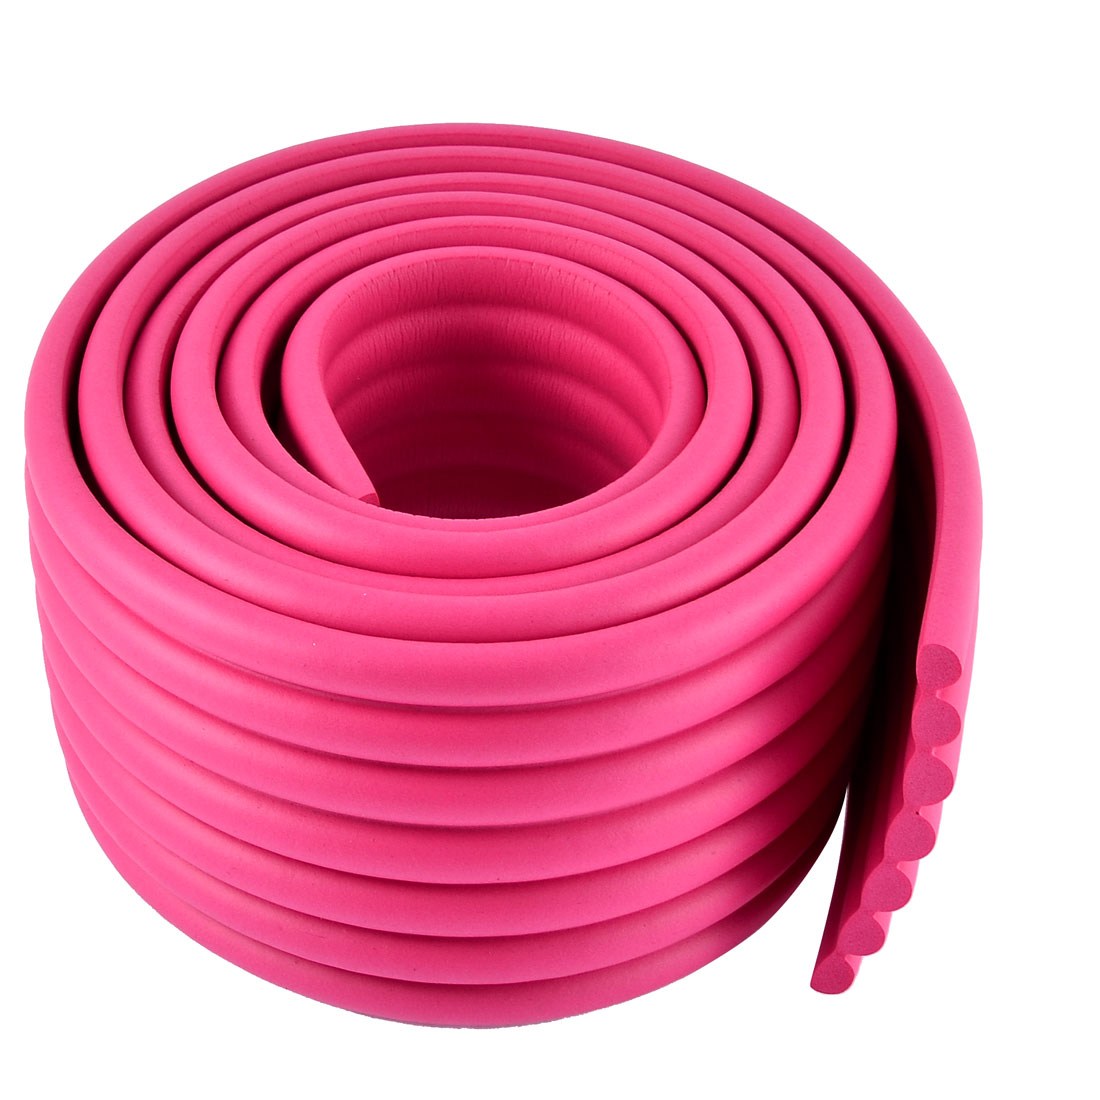 Table Desk Edge Corner Cushion Guard Protector Bumper 2M Long Fuchsia